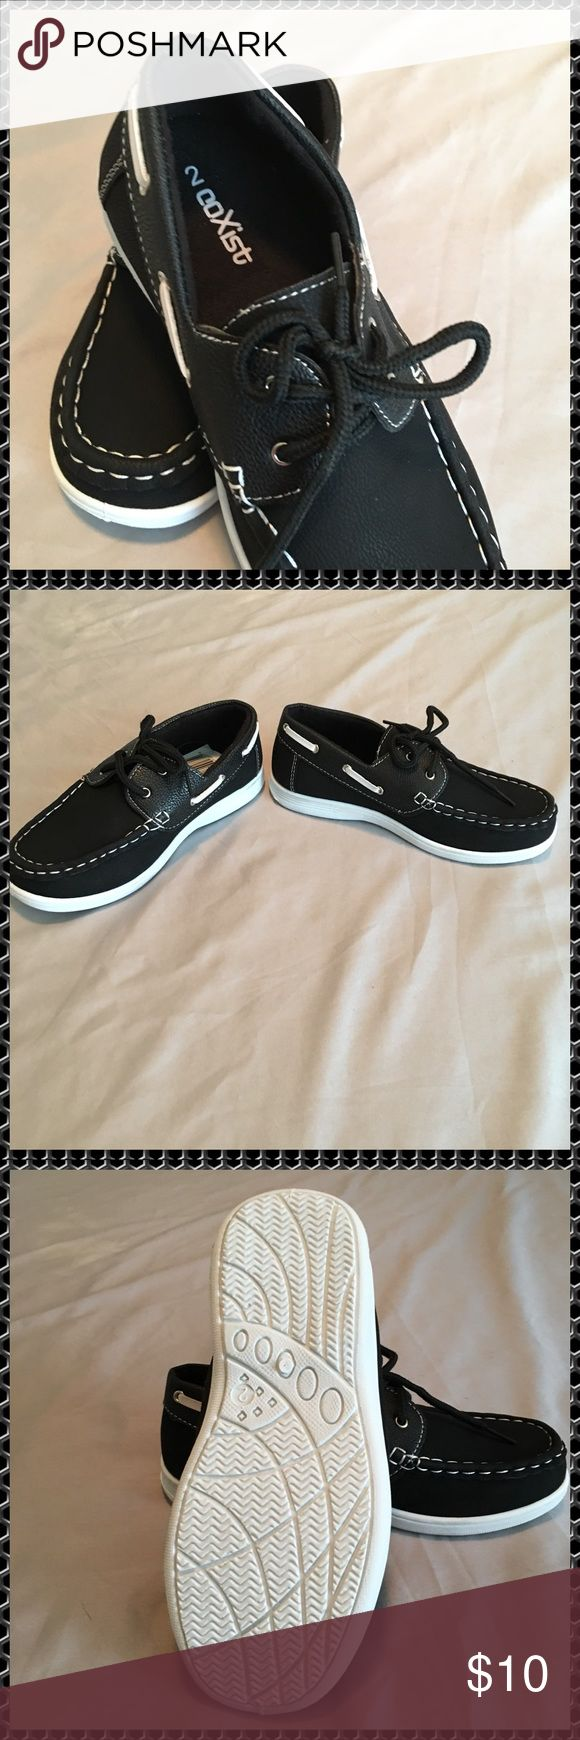 """CoXist Black Faux Leather Boat Shoes Size 2. Boys Big Kids.  CoXist Boat Shoes.  Black Faux Leather.  White Stitching and White Bottoms.  Bottom of shoe is 8 1/2"""" Long. CoXist Shoes Dress Shoes"""